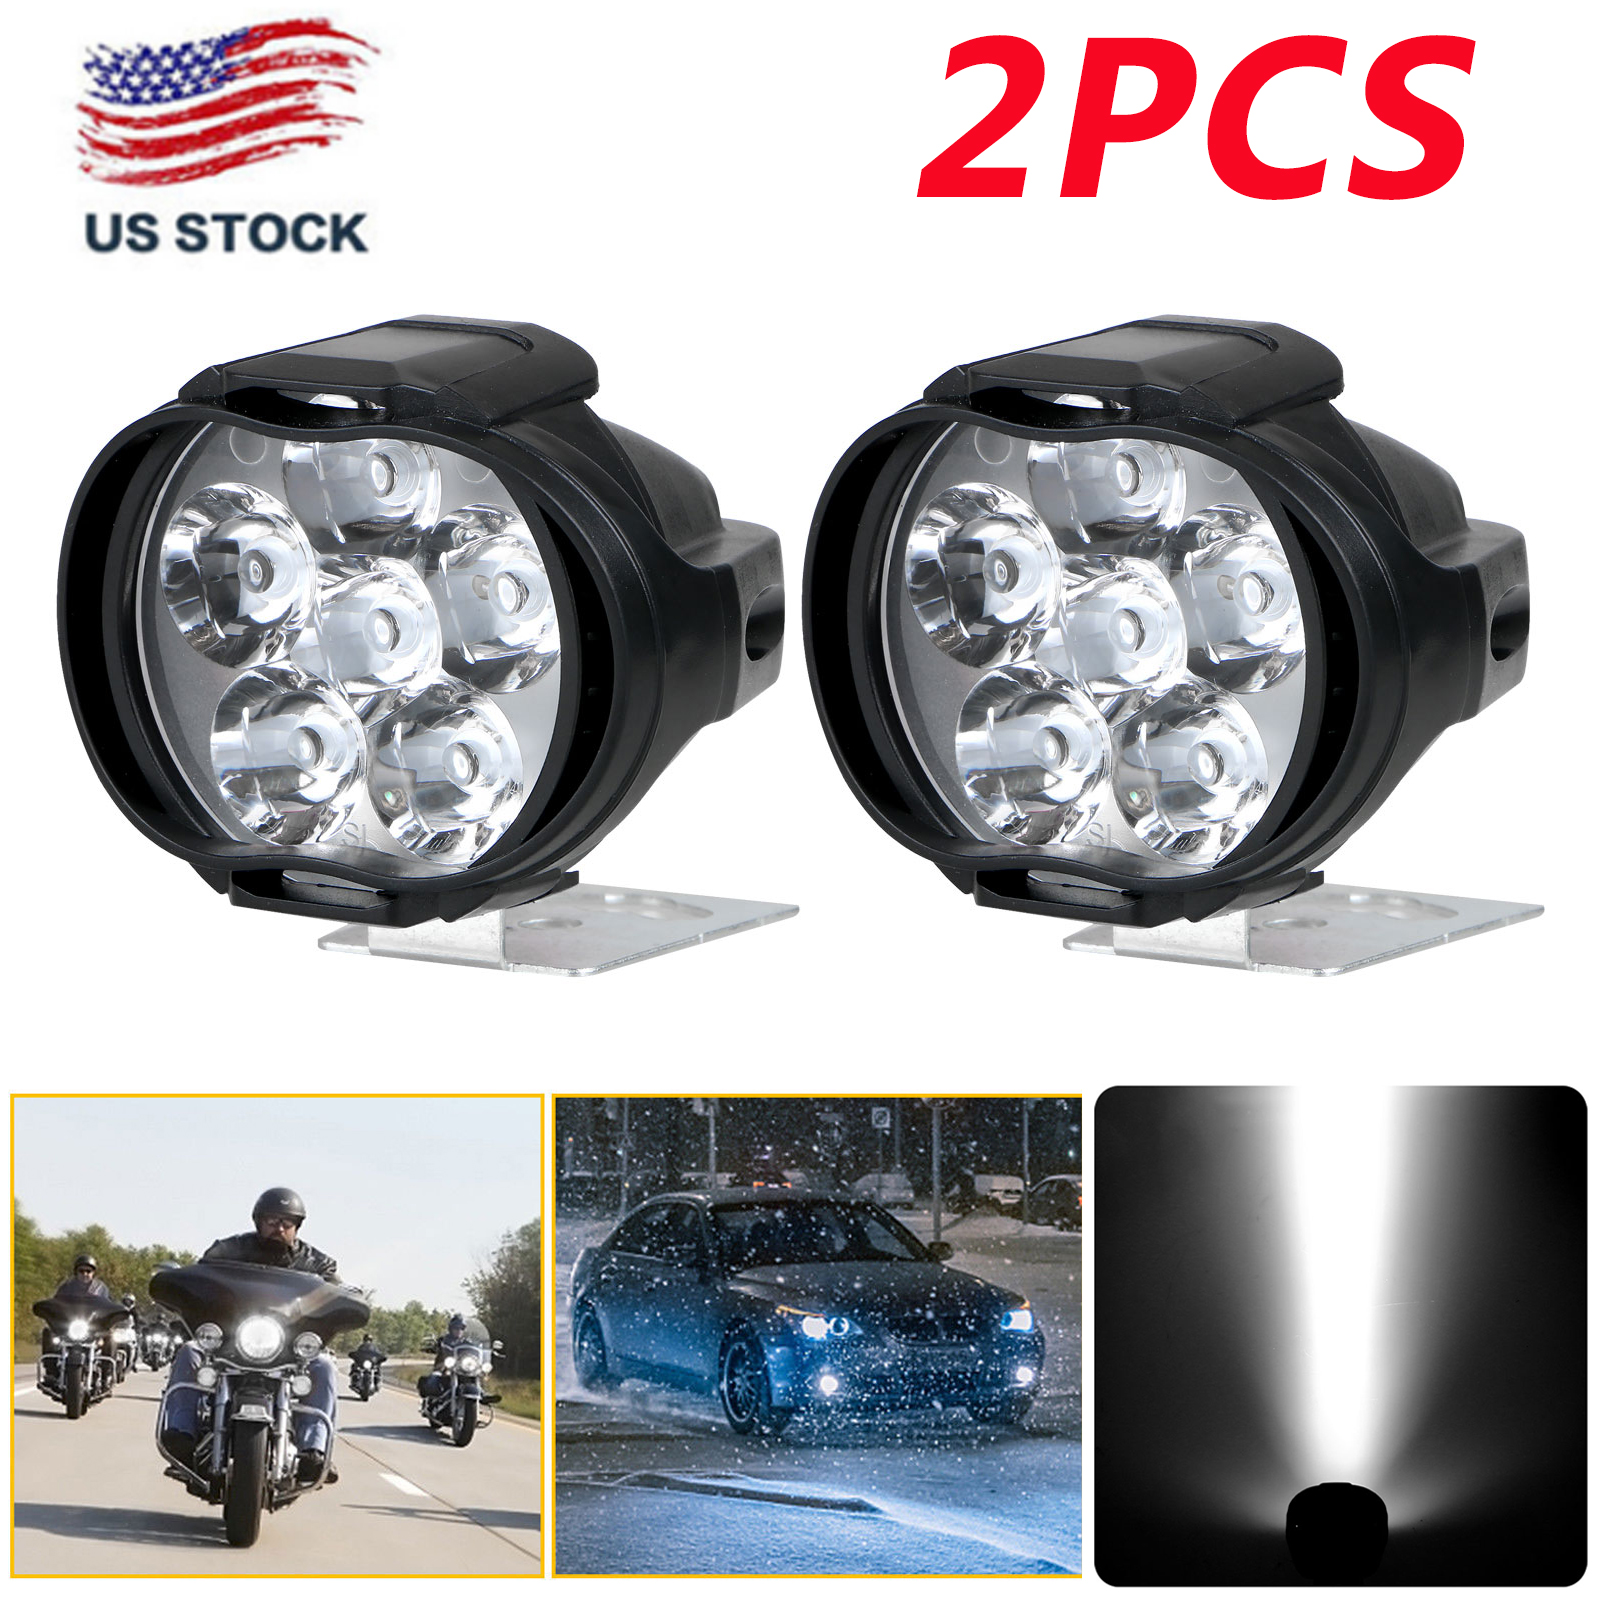 2Pcs-6LED-White-Motorcycle-Headlight-Spot-Light-DRL-Driving-Fog-Lamp-Waterproof